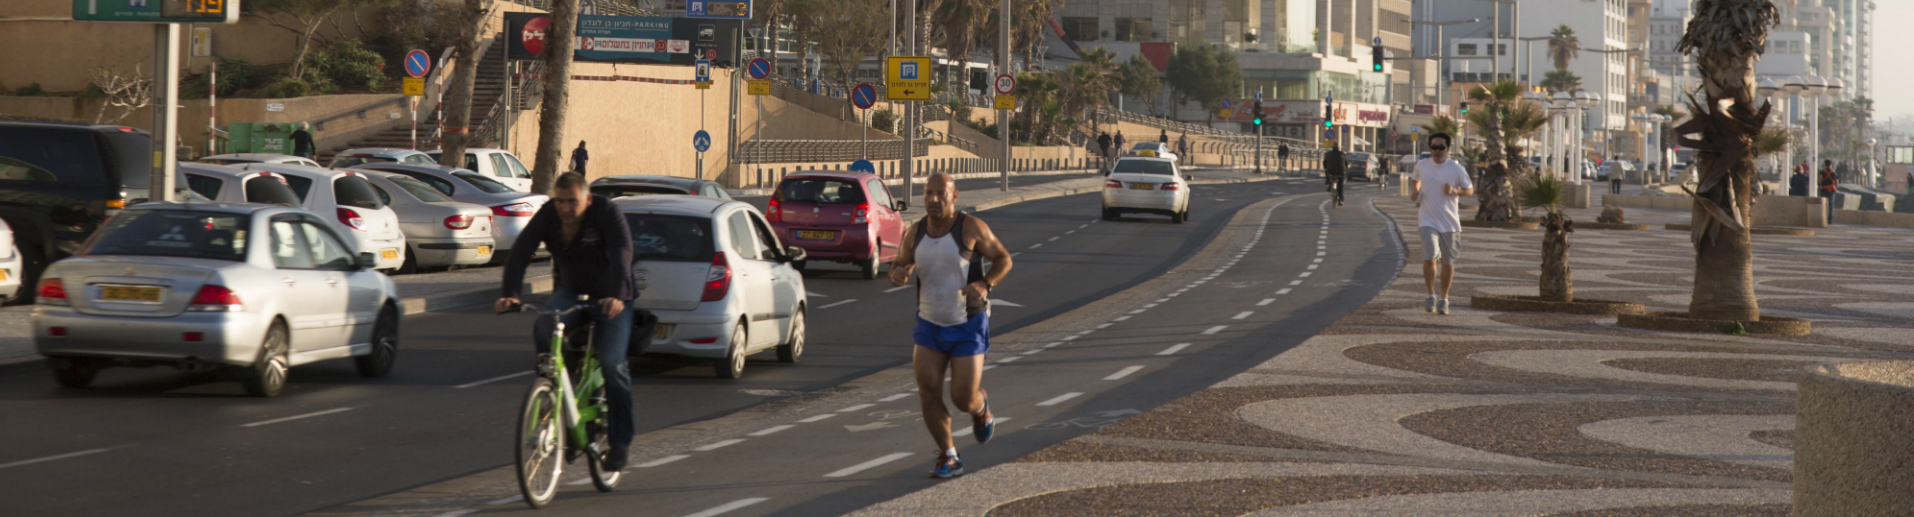 Traffic near Tel Aviv beach